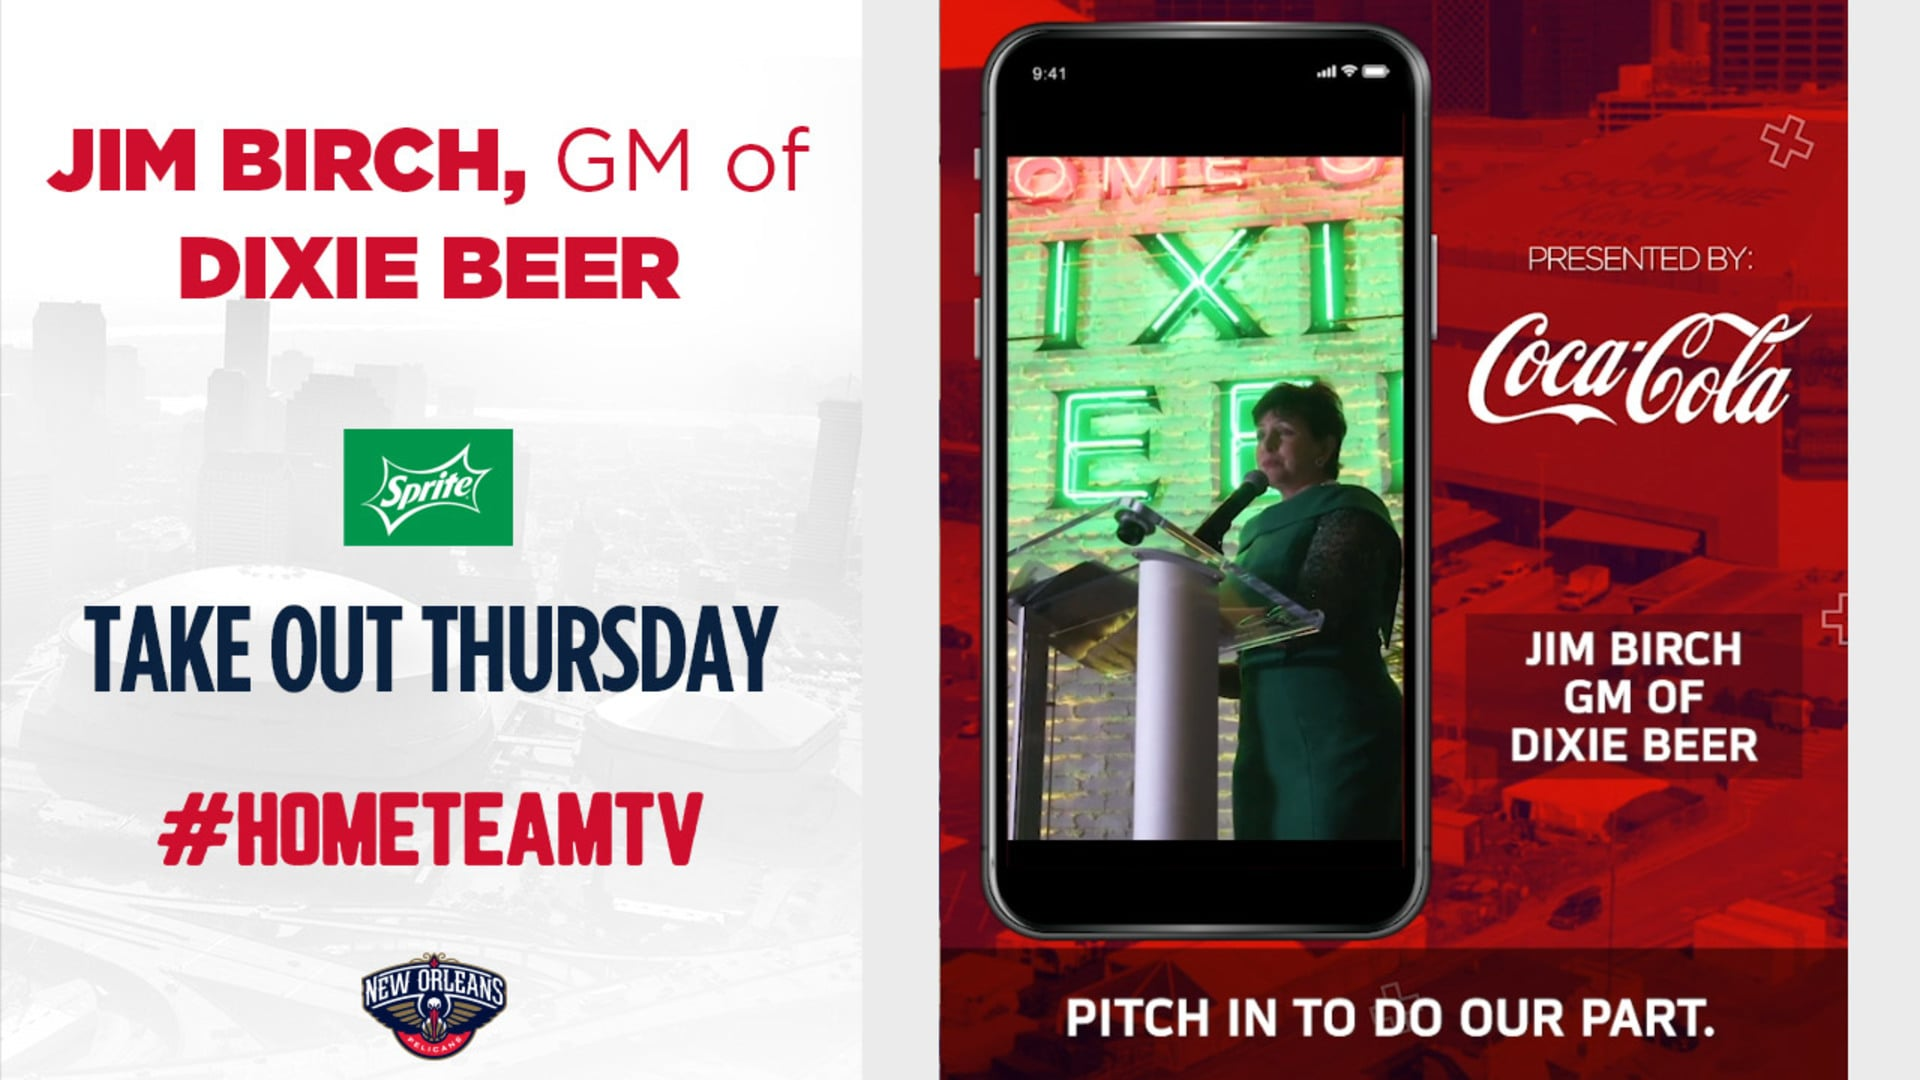 HomeTeamTV: Takeout Thursday with Dixie Beer GM Jim Birch, 4/8/20